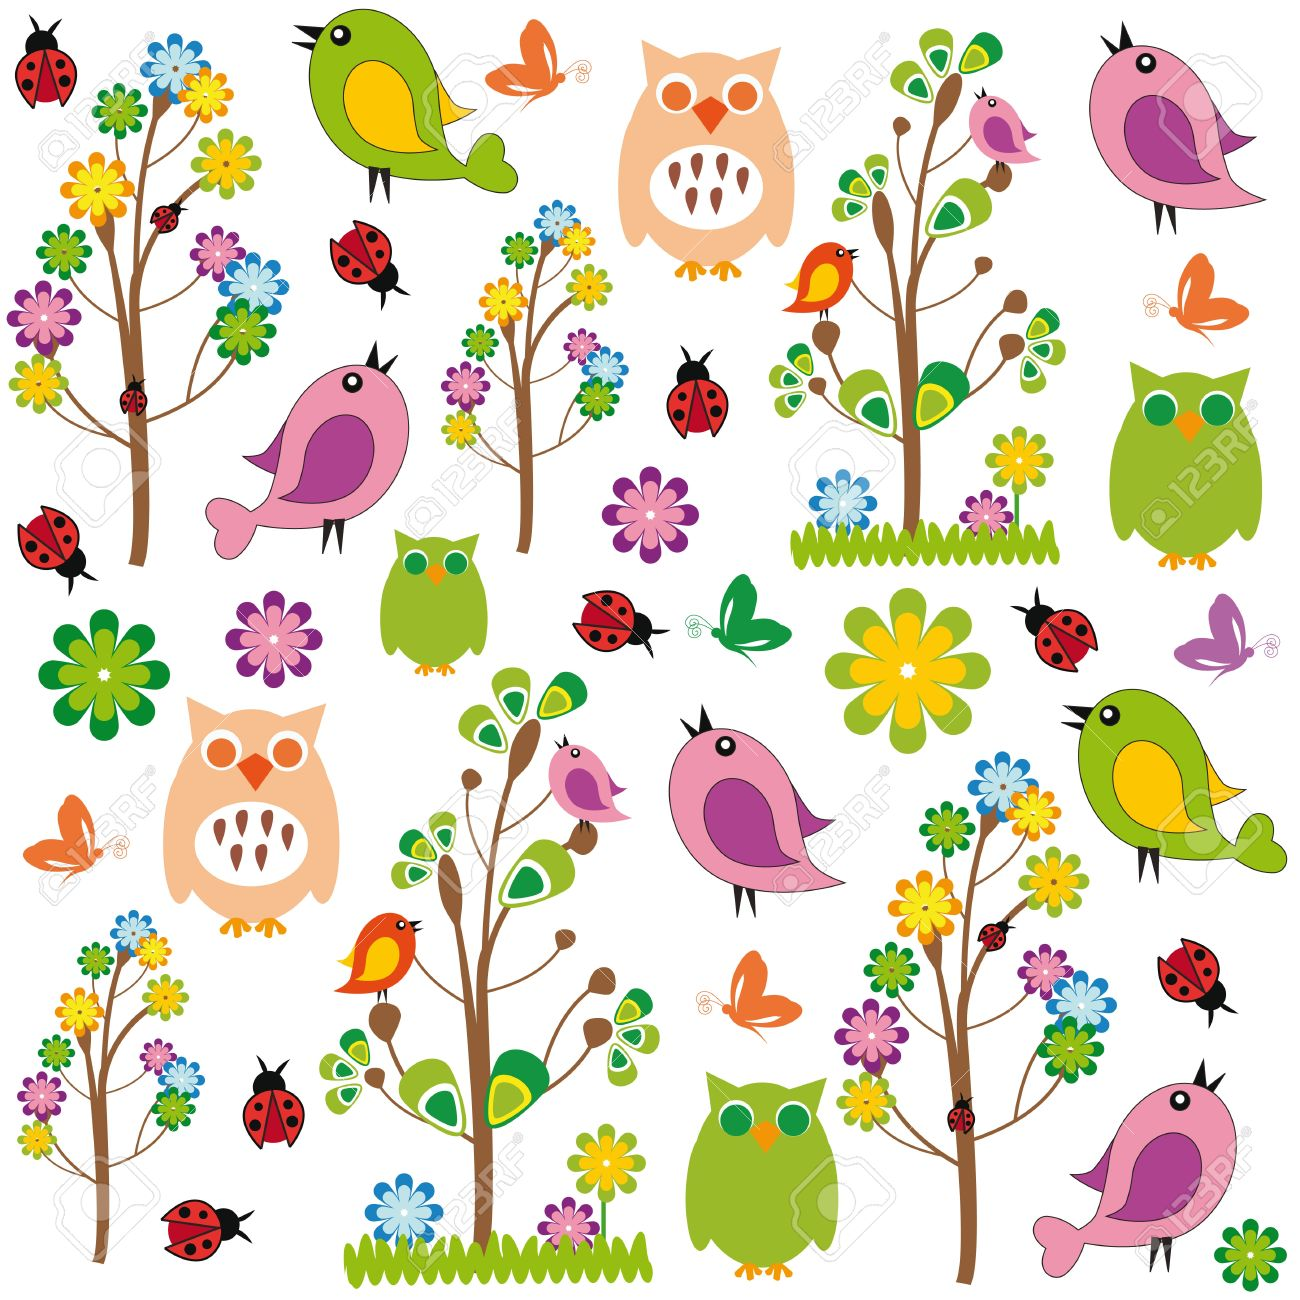 Cute kids cartoon with flowers and birds Stock Vector - 12747290